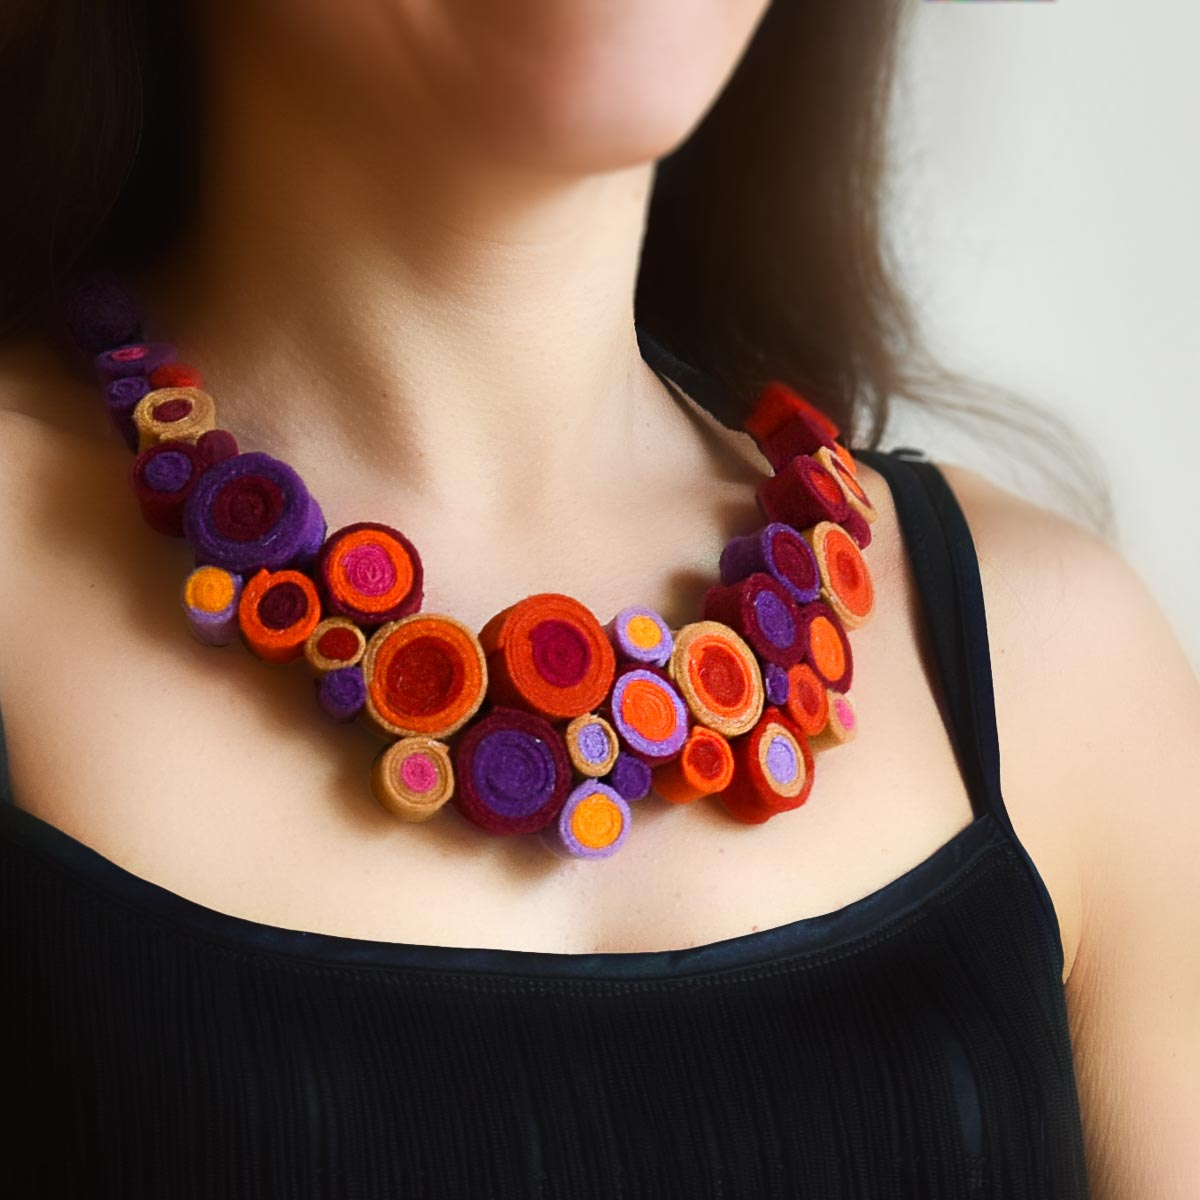 Blooming jewelry consists of two large statement collar necklaces inspired by the colorful variety of flower gardens. The jewelry is made with felt beads and looks like a blooming garden.